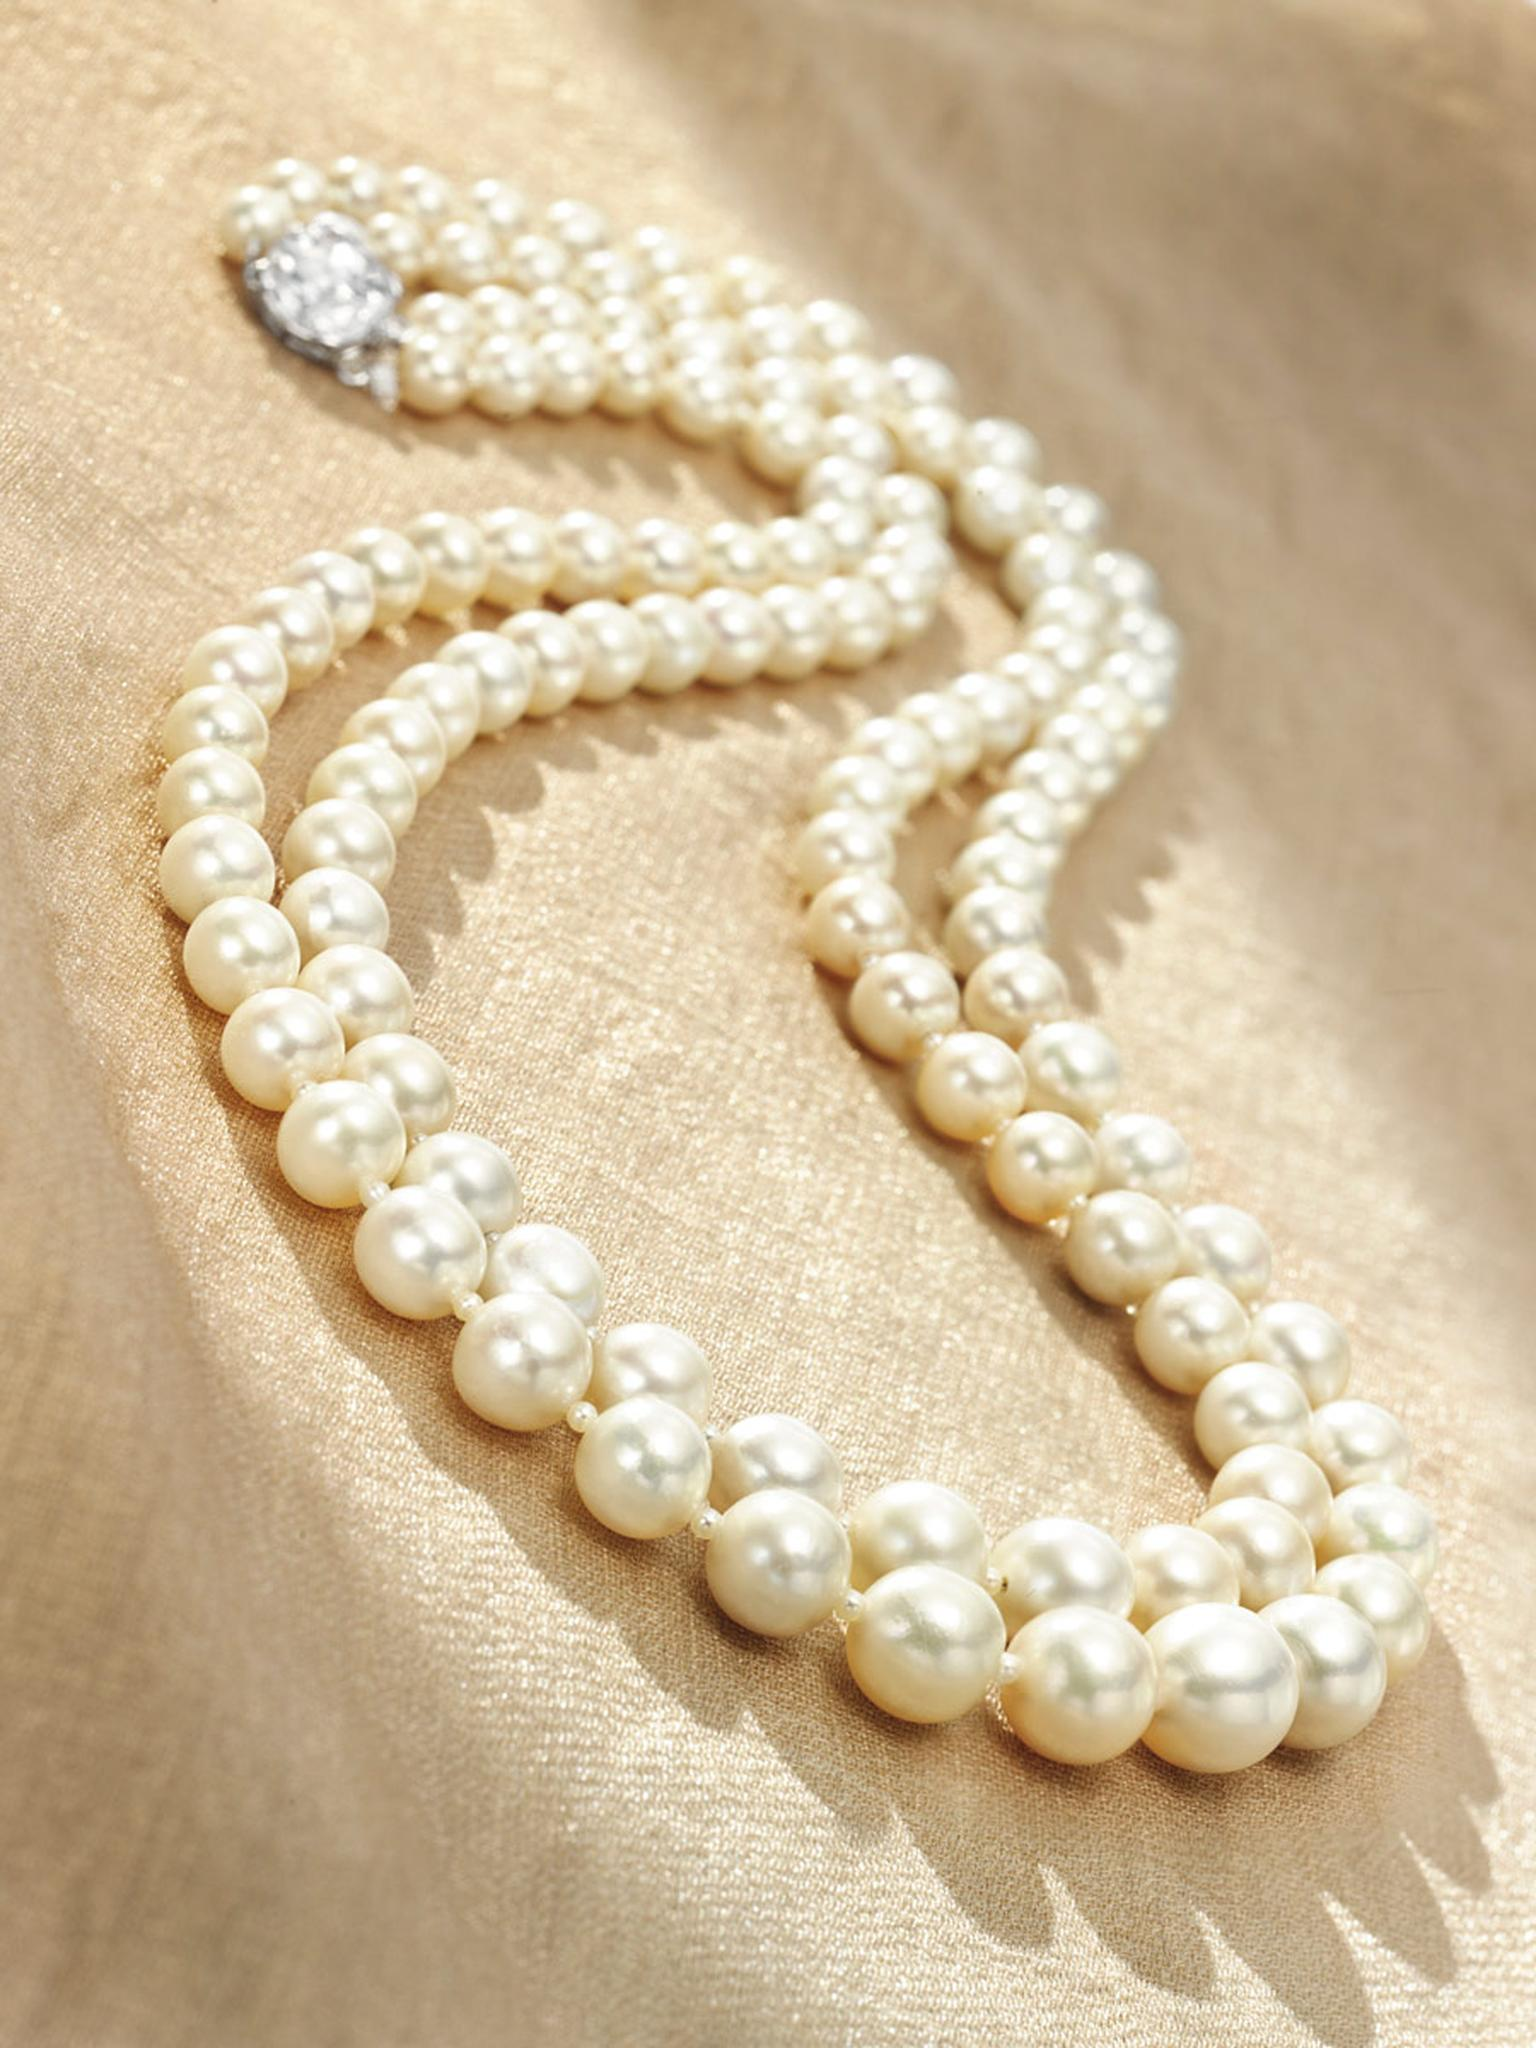 Christies-double-strand-natural-pearl-necklace.jpg